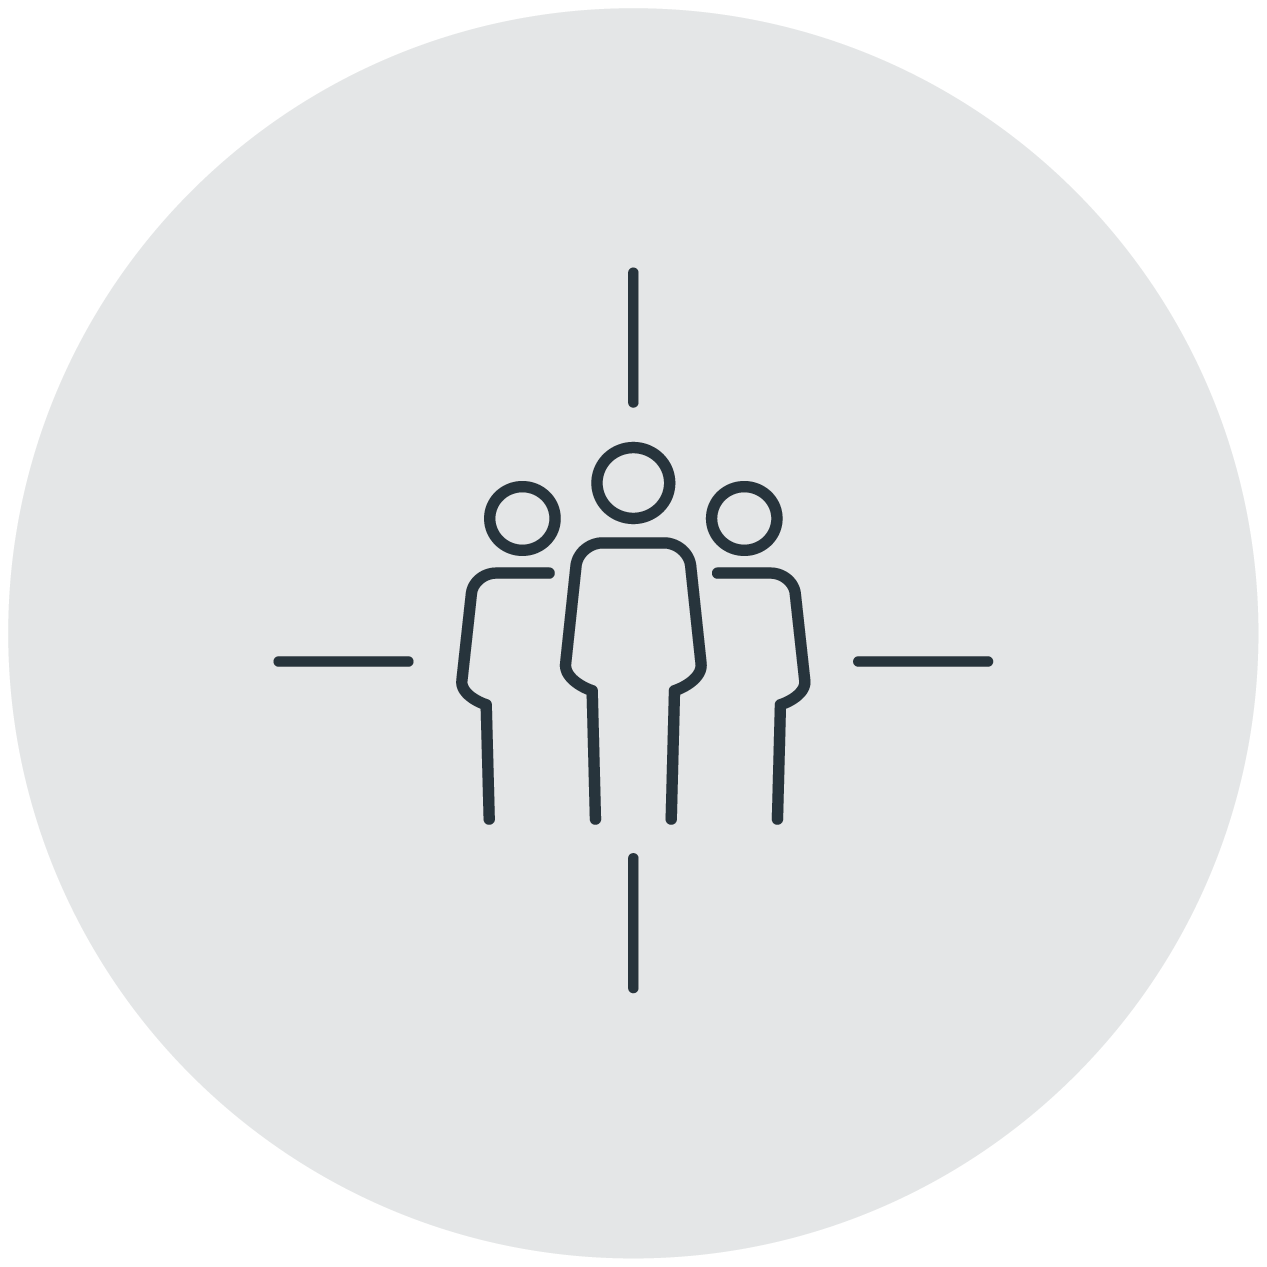 Why do I need target group insight?